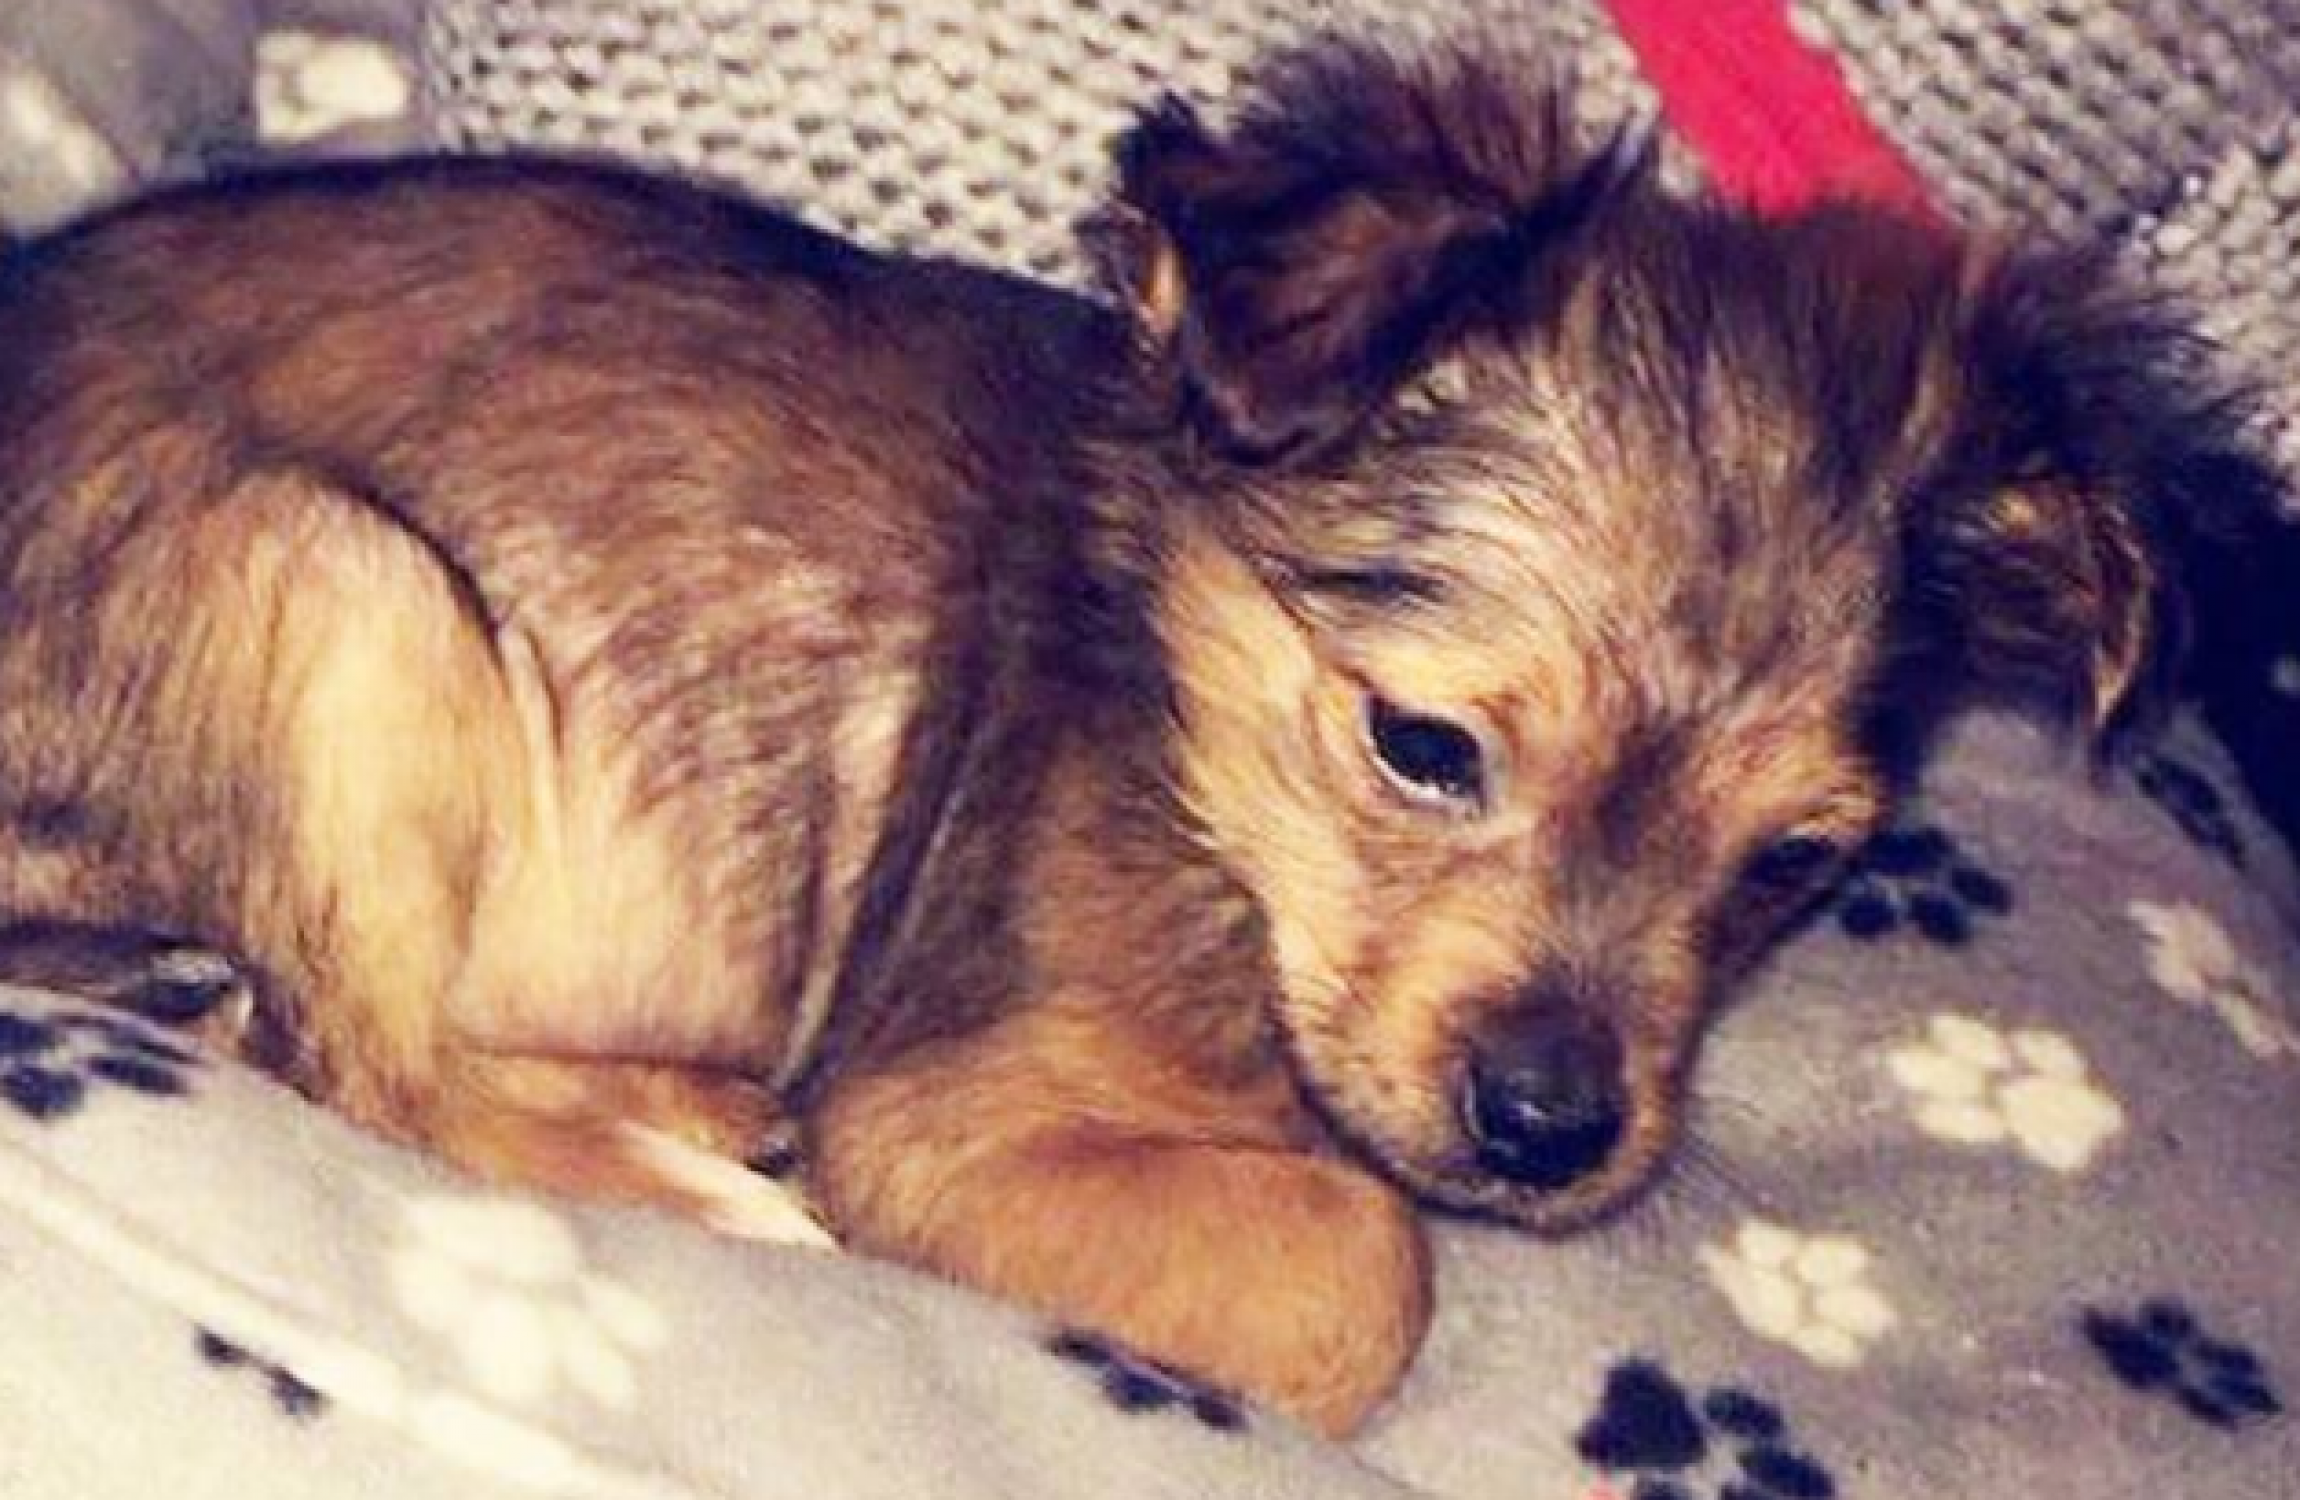 Man charged over alleged puppy attack